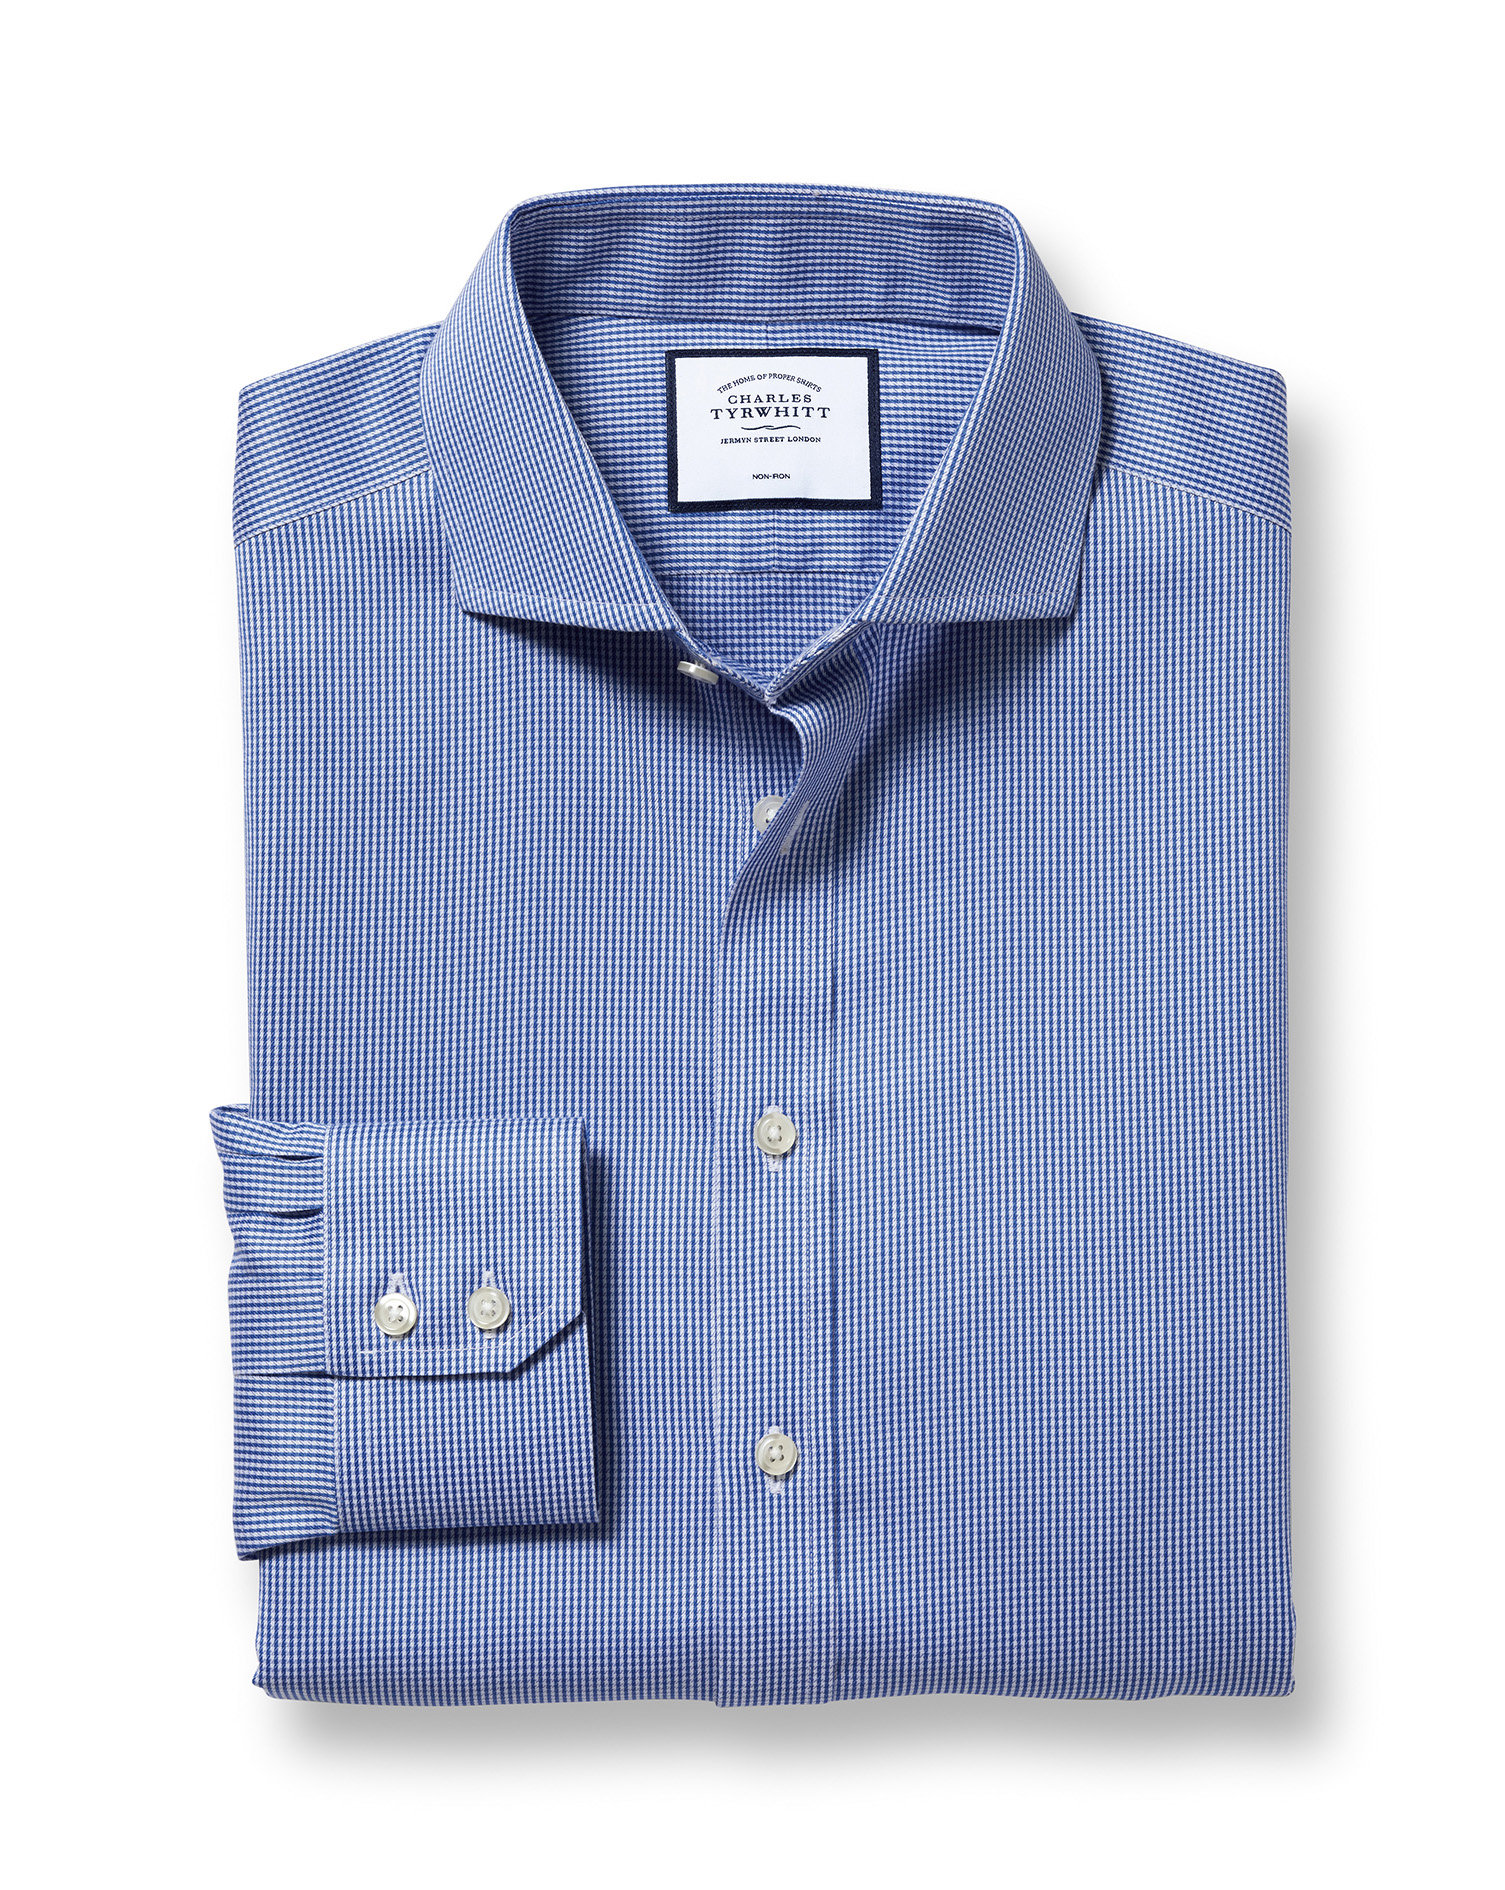 Slim Fit Non-Iron Cutaway Royal Blue Puppytooth Cotton Formal Shirt Double Cuff Size 16/36 by Charle